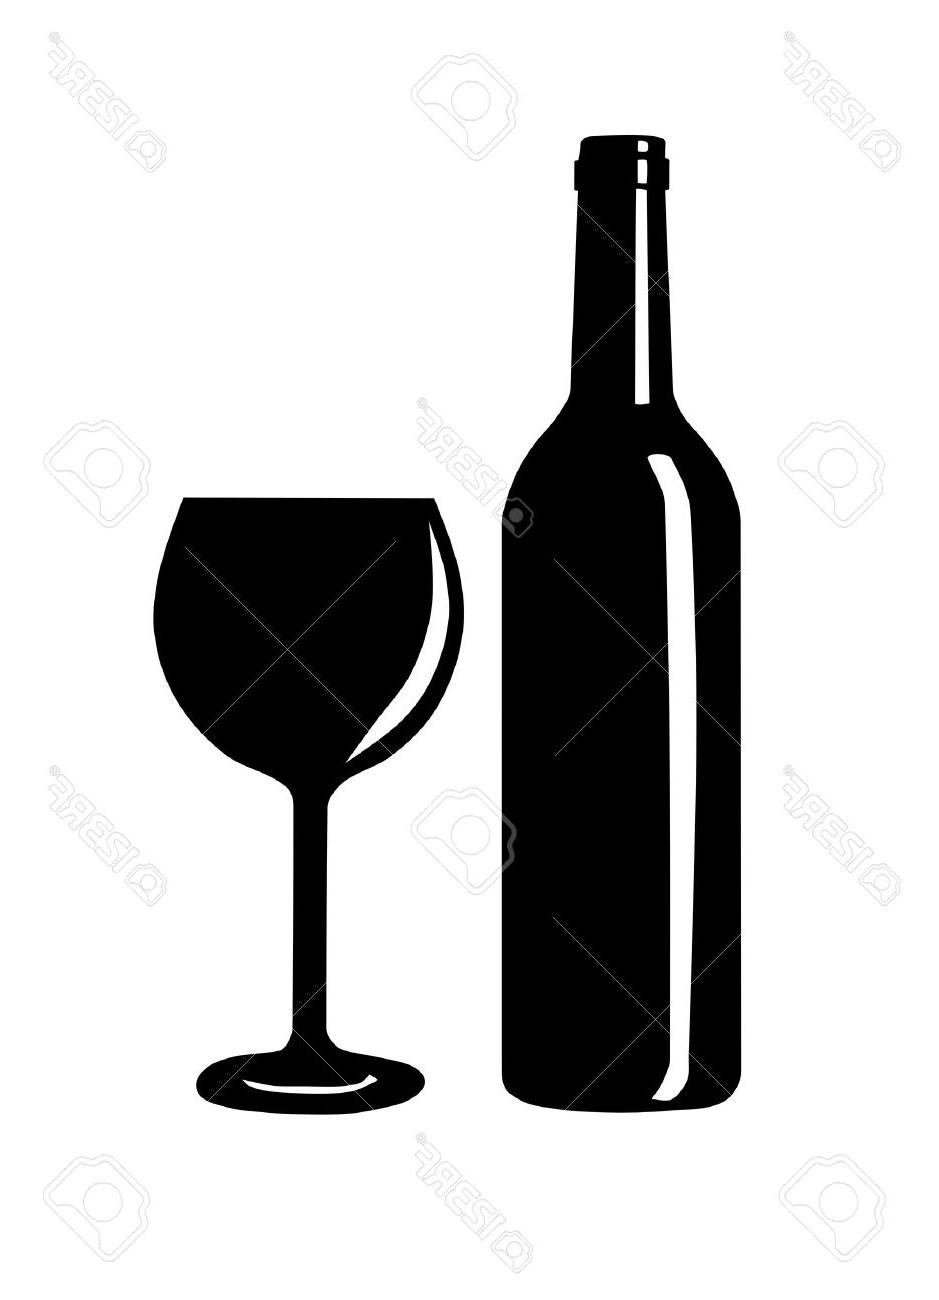 Wine butler and glass clipart clipart royalty free library Top Wine Silhouette Vector Design » Free Vector Art, Images ... clipart royalty free library